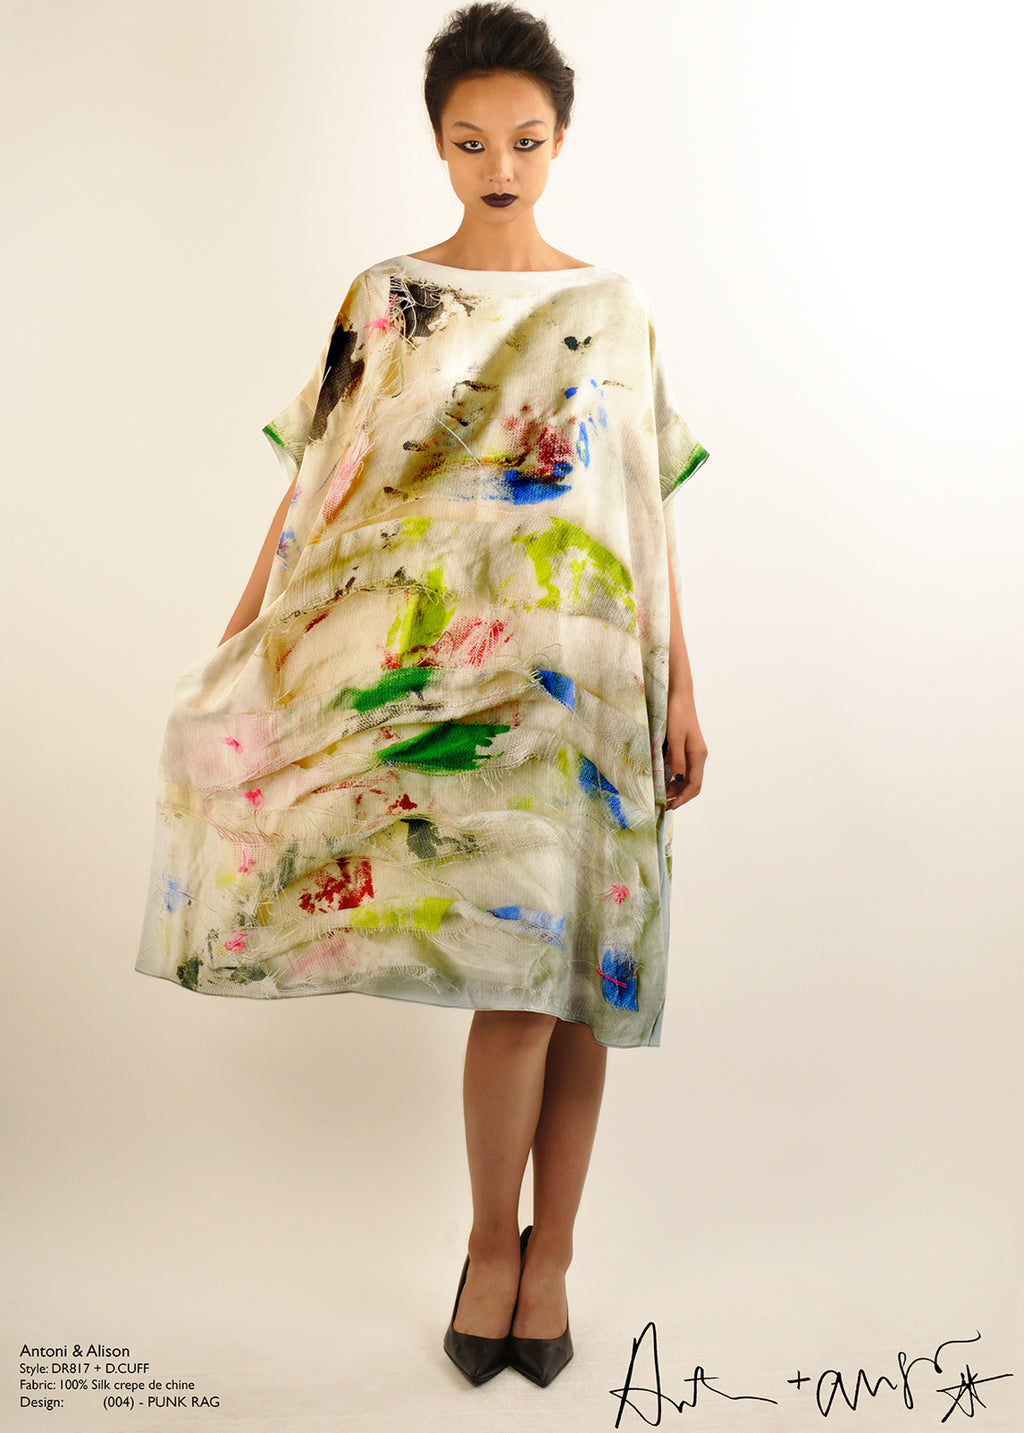 Antoni & Alison Punk Rag Silk Dress